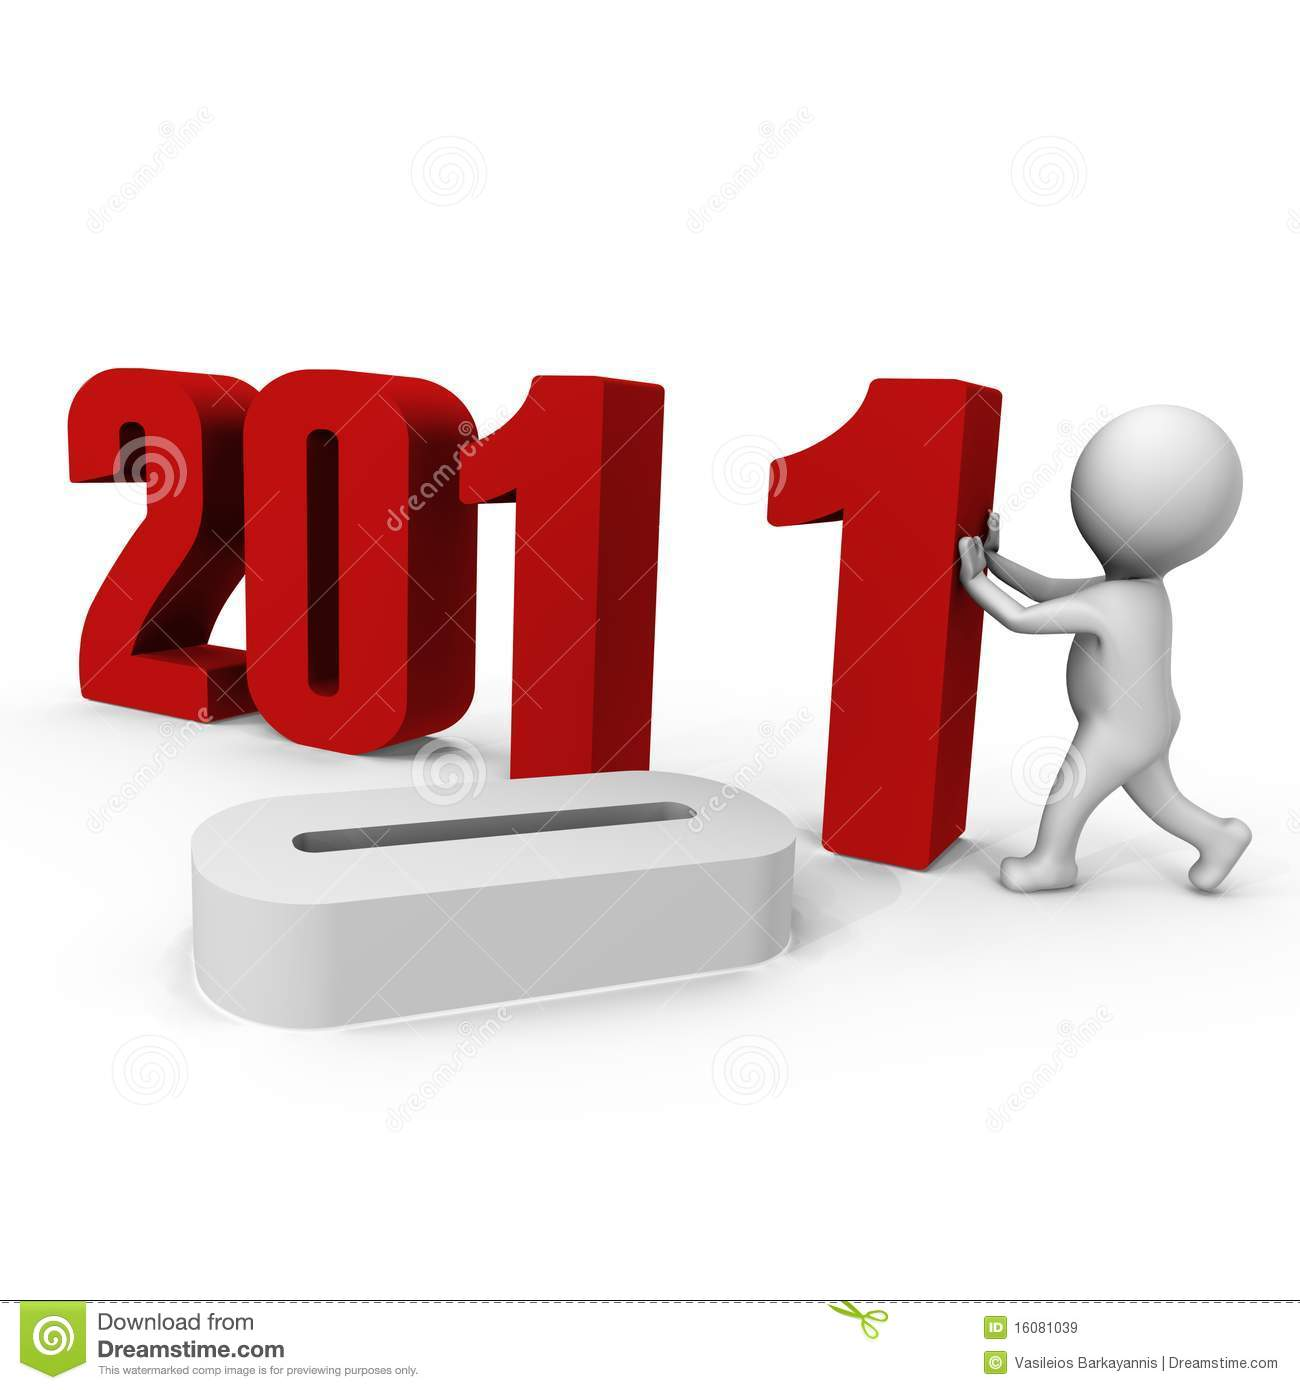 Replacing numbers to form new year 2011 - a 3d ima